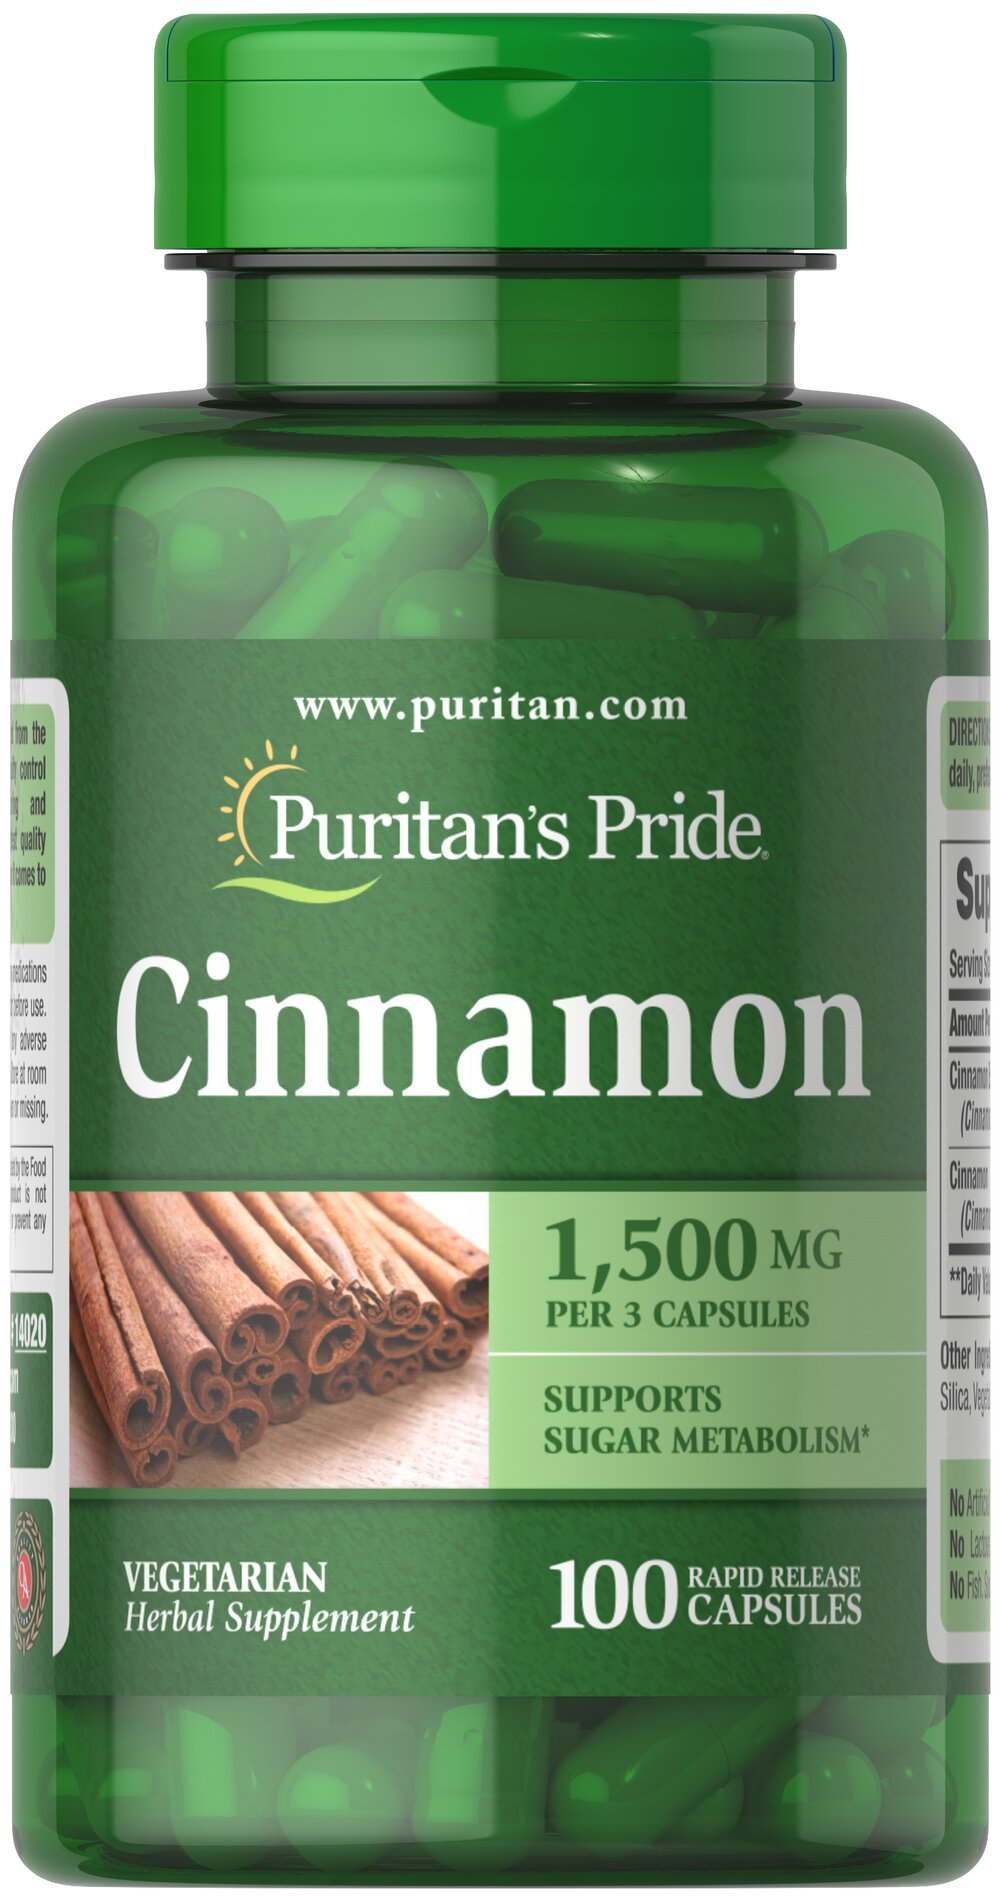 Cinnamon 500 mg <p></p>This ancient herb has been referenced in Oriental scripts dating back thousands of years. Did you know that besides use as a culinary spice, cinnamon has been noted for its antioxidant properties?** As an herbal addition to your health program, cinnamon may help support sugar metabolism.** Puritan's Pride's preservative-free gelatin capsules contain pure milled herb powder. Puritan's Pride's Natural Whole Herb products utilize ground plant parts